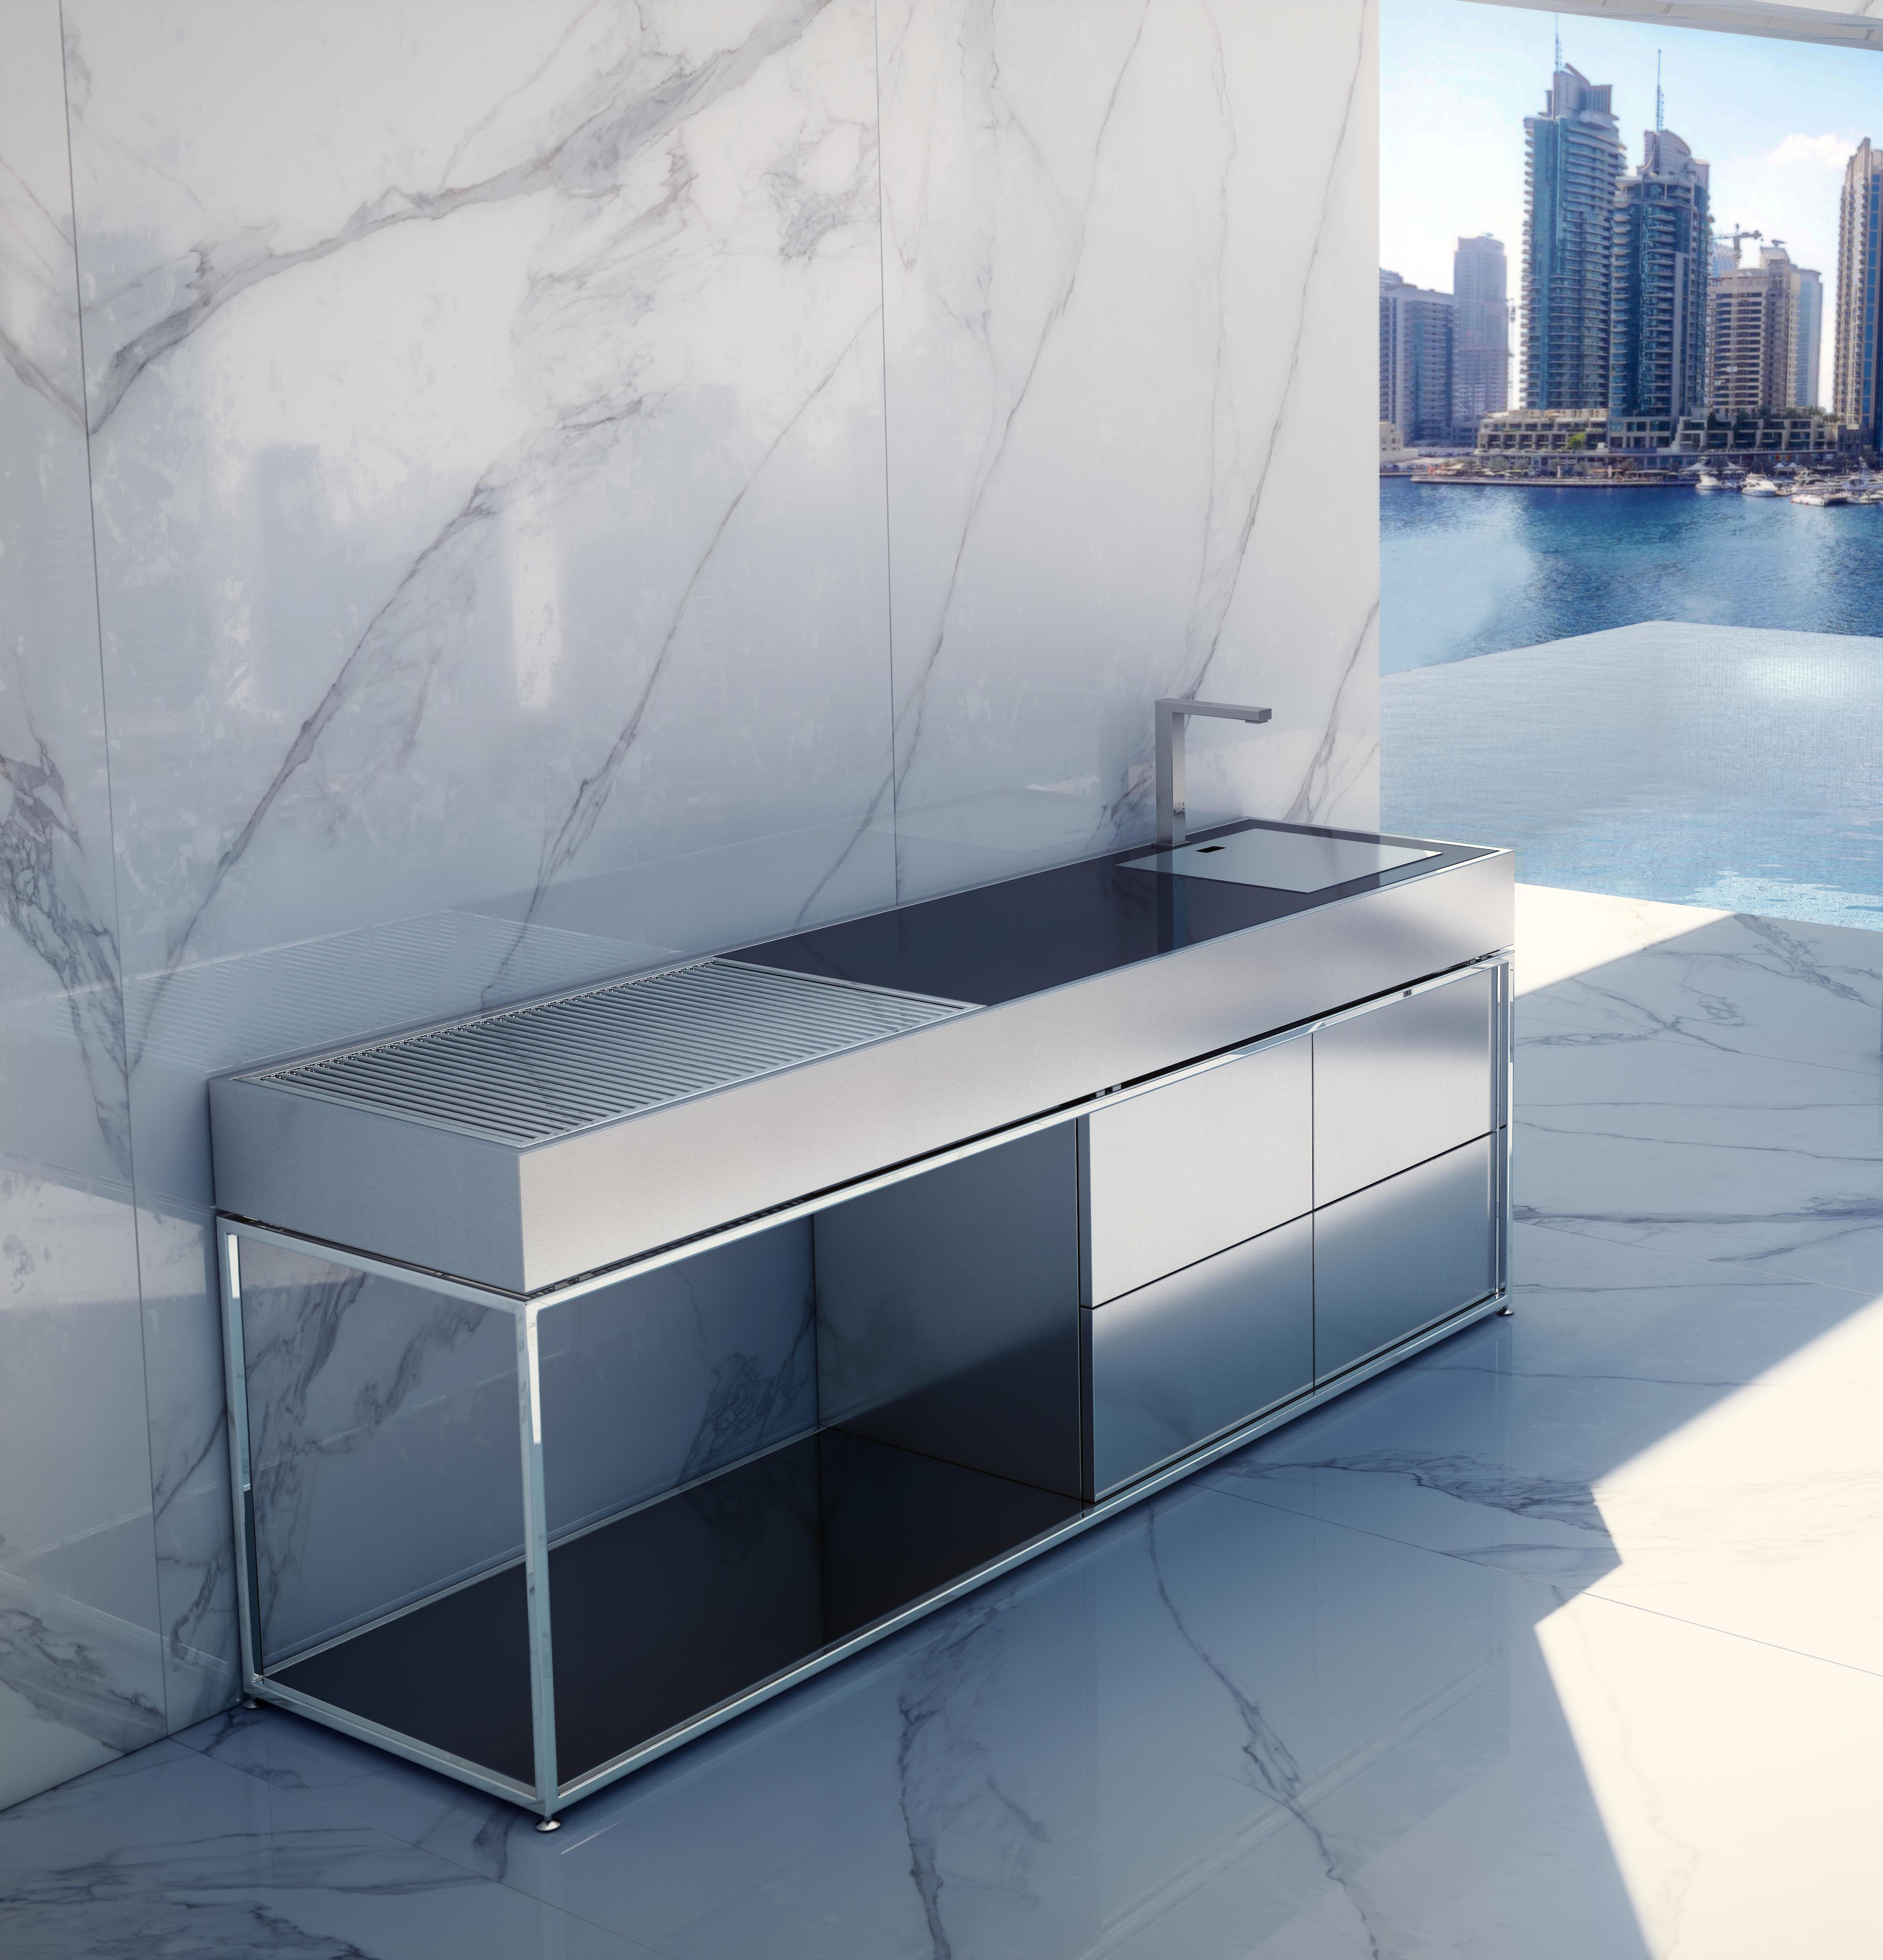 Sleek Adon Kitchen Island Gas & Charcoal BBQ Grill - Couture Outdoor